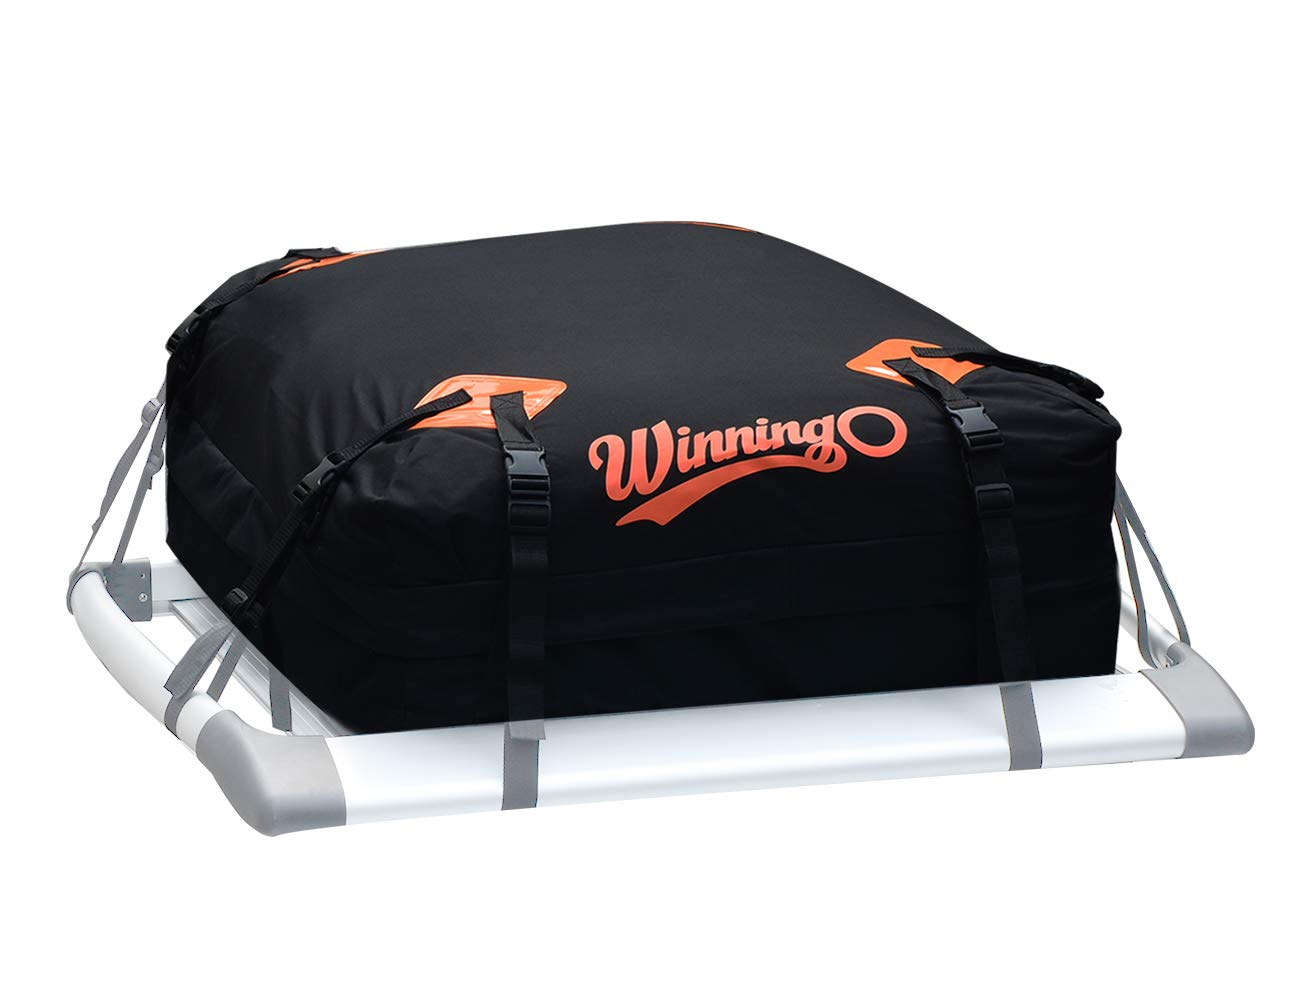 WINNINGO Cargo Bag, Water Resistant Cargo Bag Easy to Install Soft Rooftop Luggage Carriers Works with or Without Roof Rack (Free Waterproof Cover) (Black)